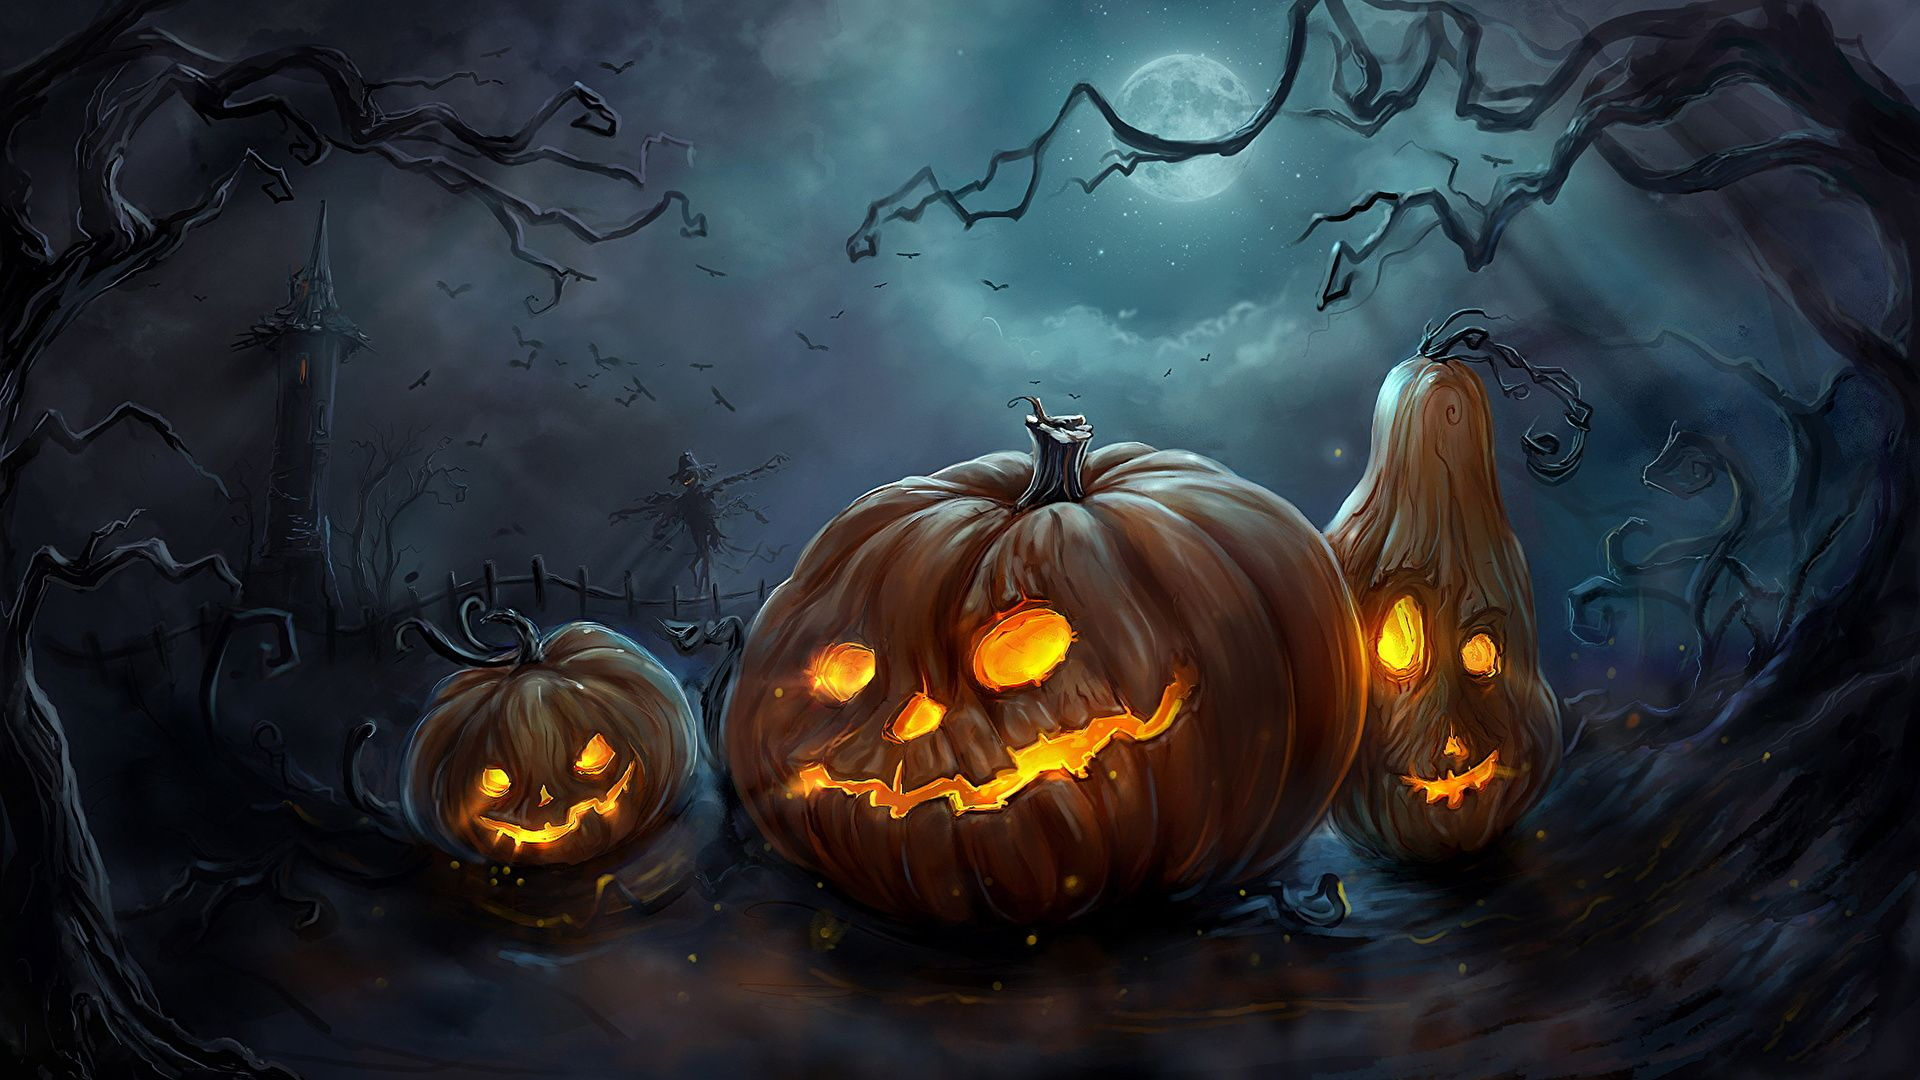 HD Wallpaper Desktop for Halloween   Best Wallpaper HD Halloween 1920x1080